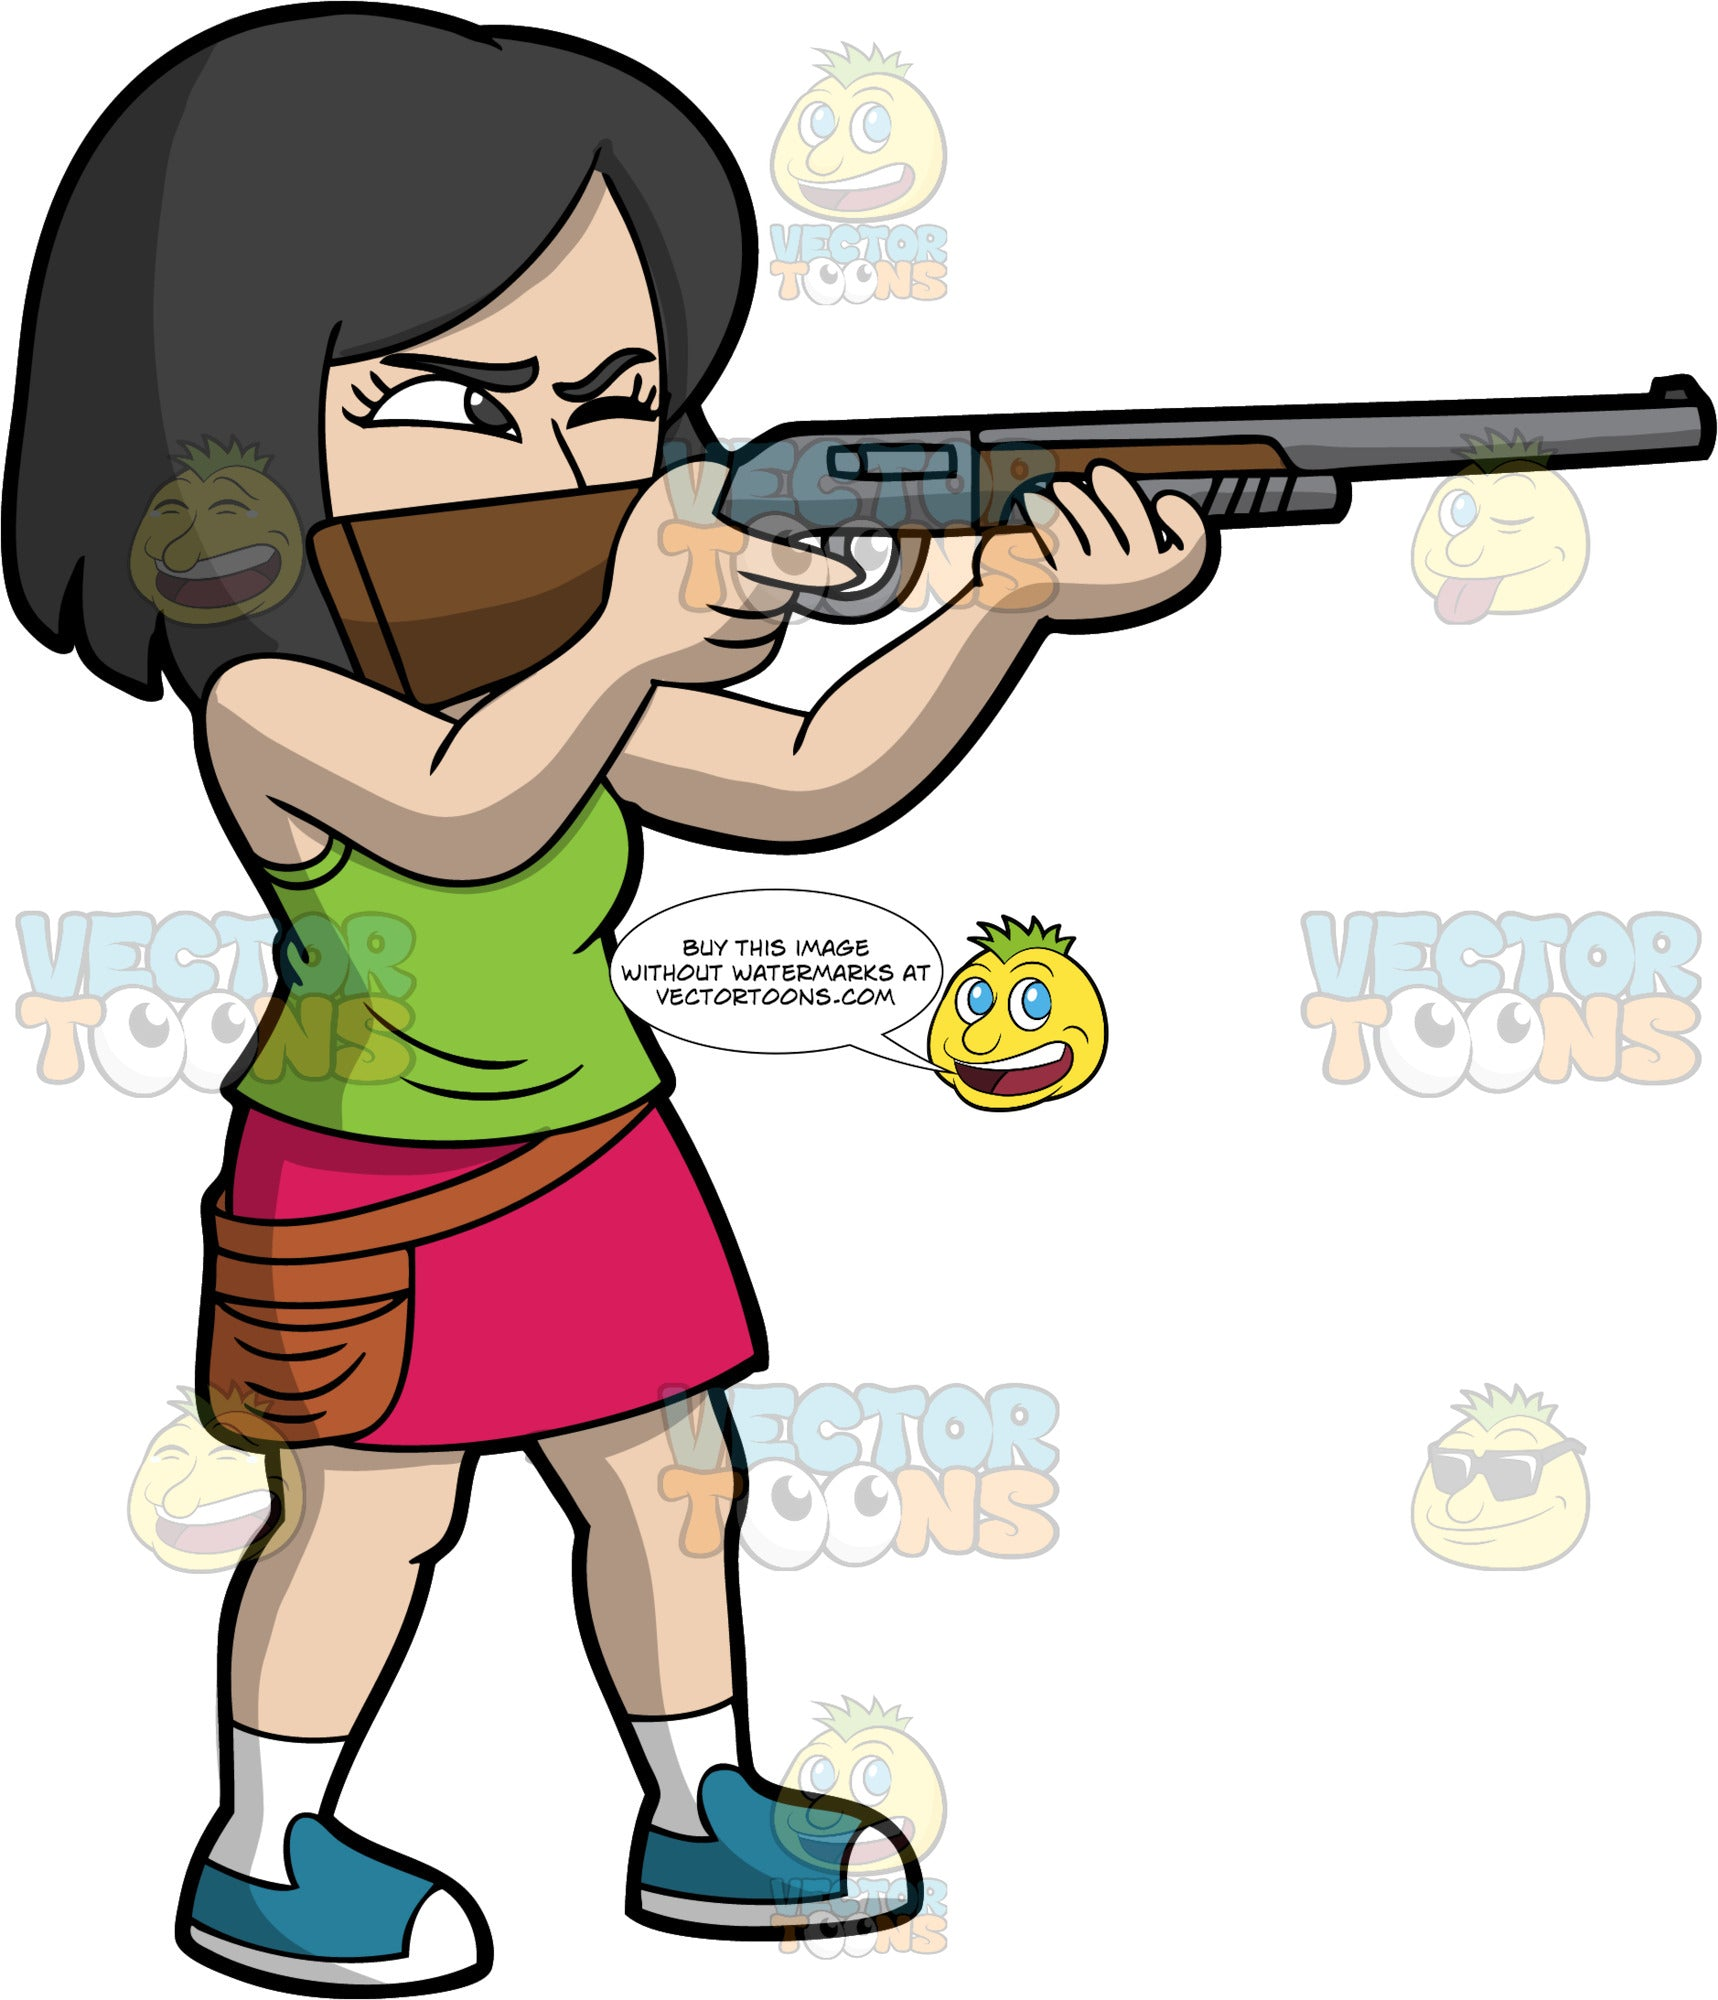 An Asian Woman Skeet Shooting. An Asian woman with black hair, wearing a dark pink skirt, a green shirt, white socks, and blue shoes, holds a shotgun up near her face, closes one eye and aims at a target